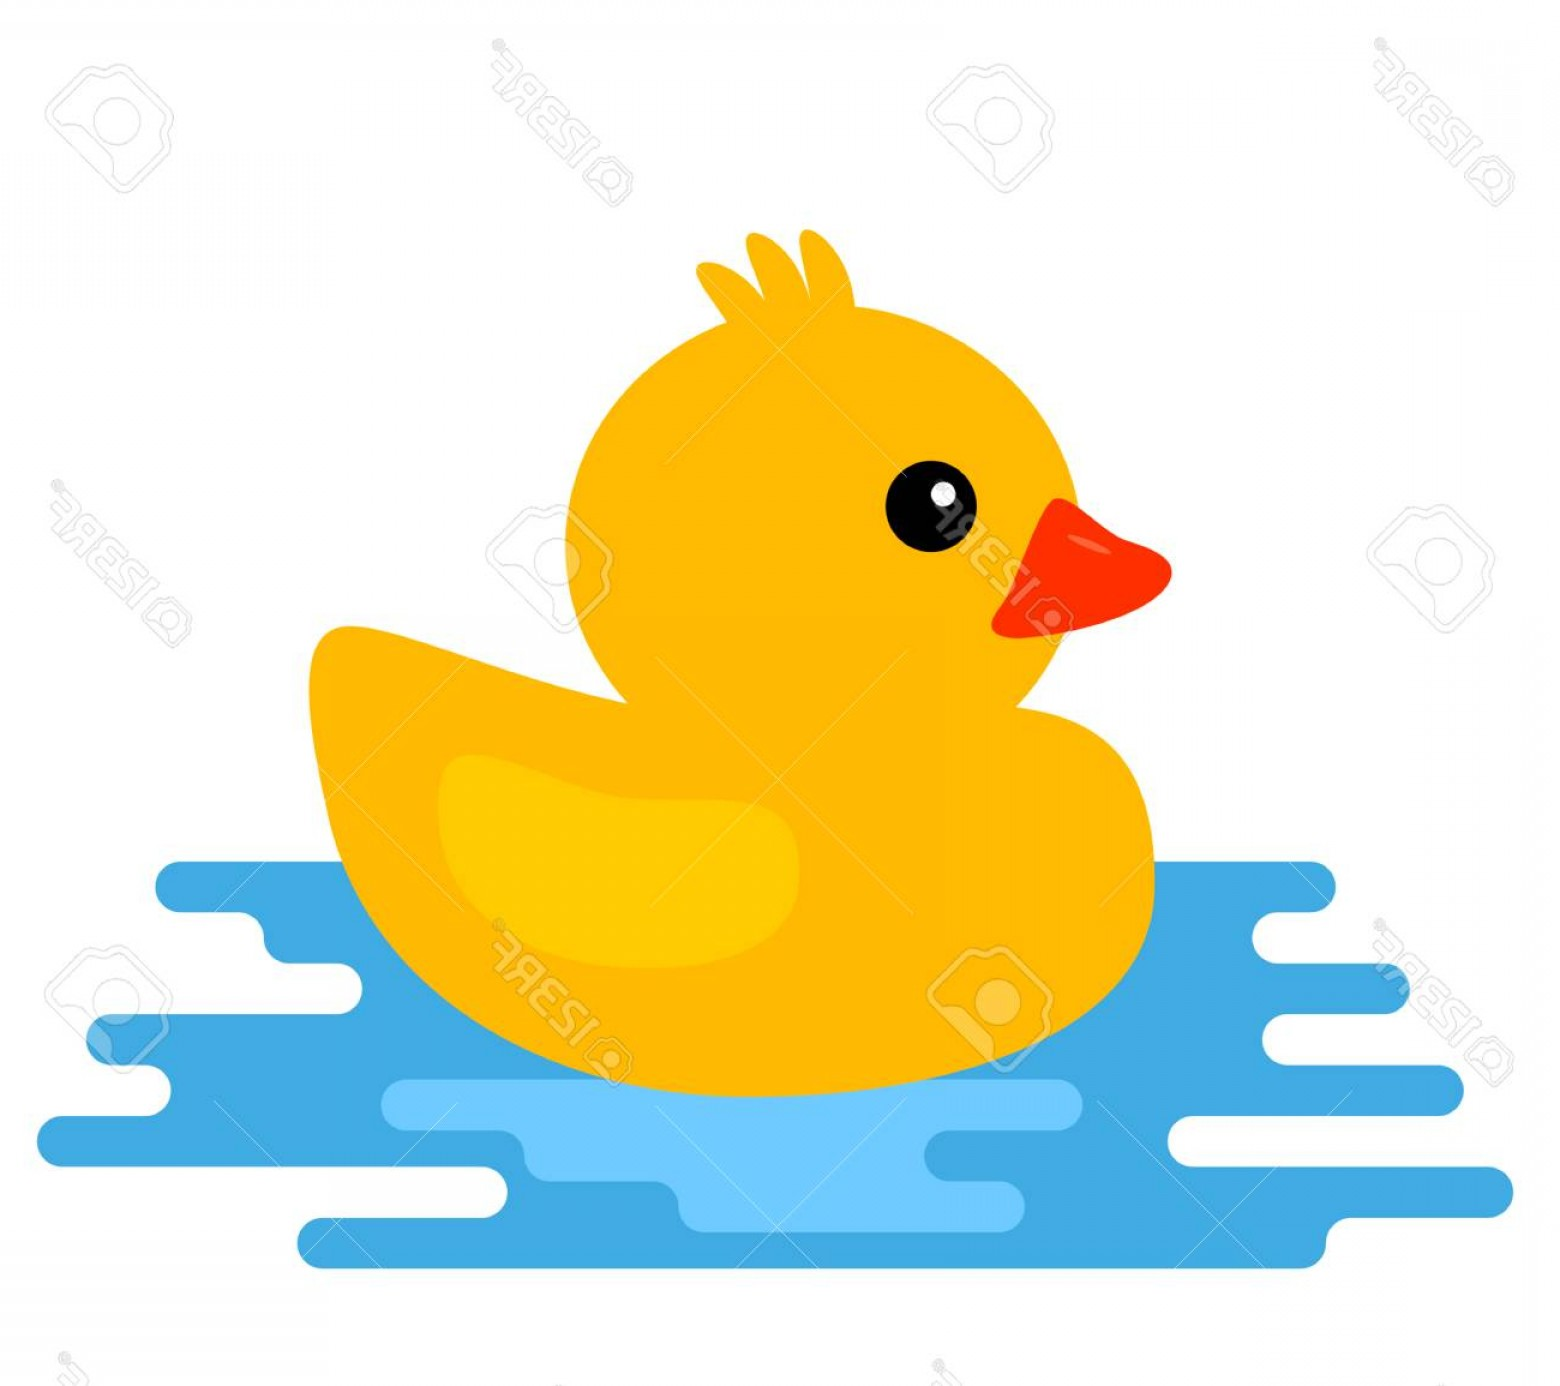 Cartoon Duck Vector: Photostock Vector Yellow Rubber Duck Vector Illustration Of Cartoon Style Isolated On White Background